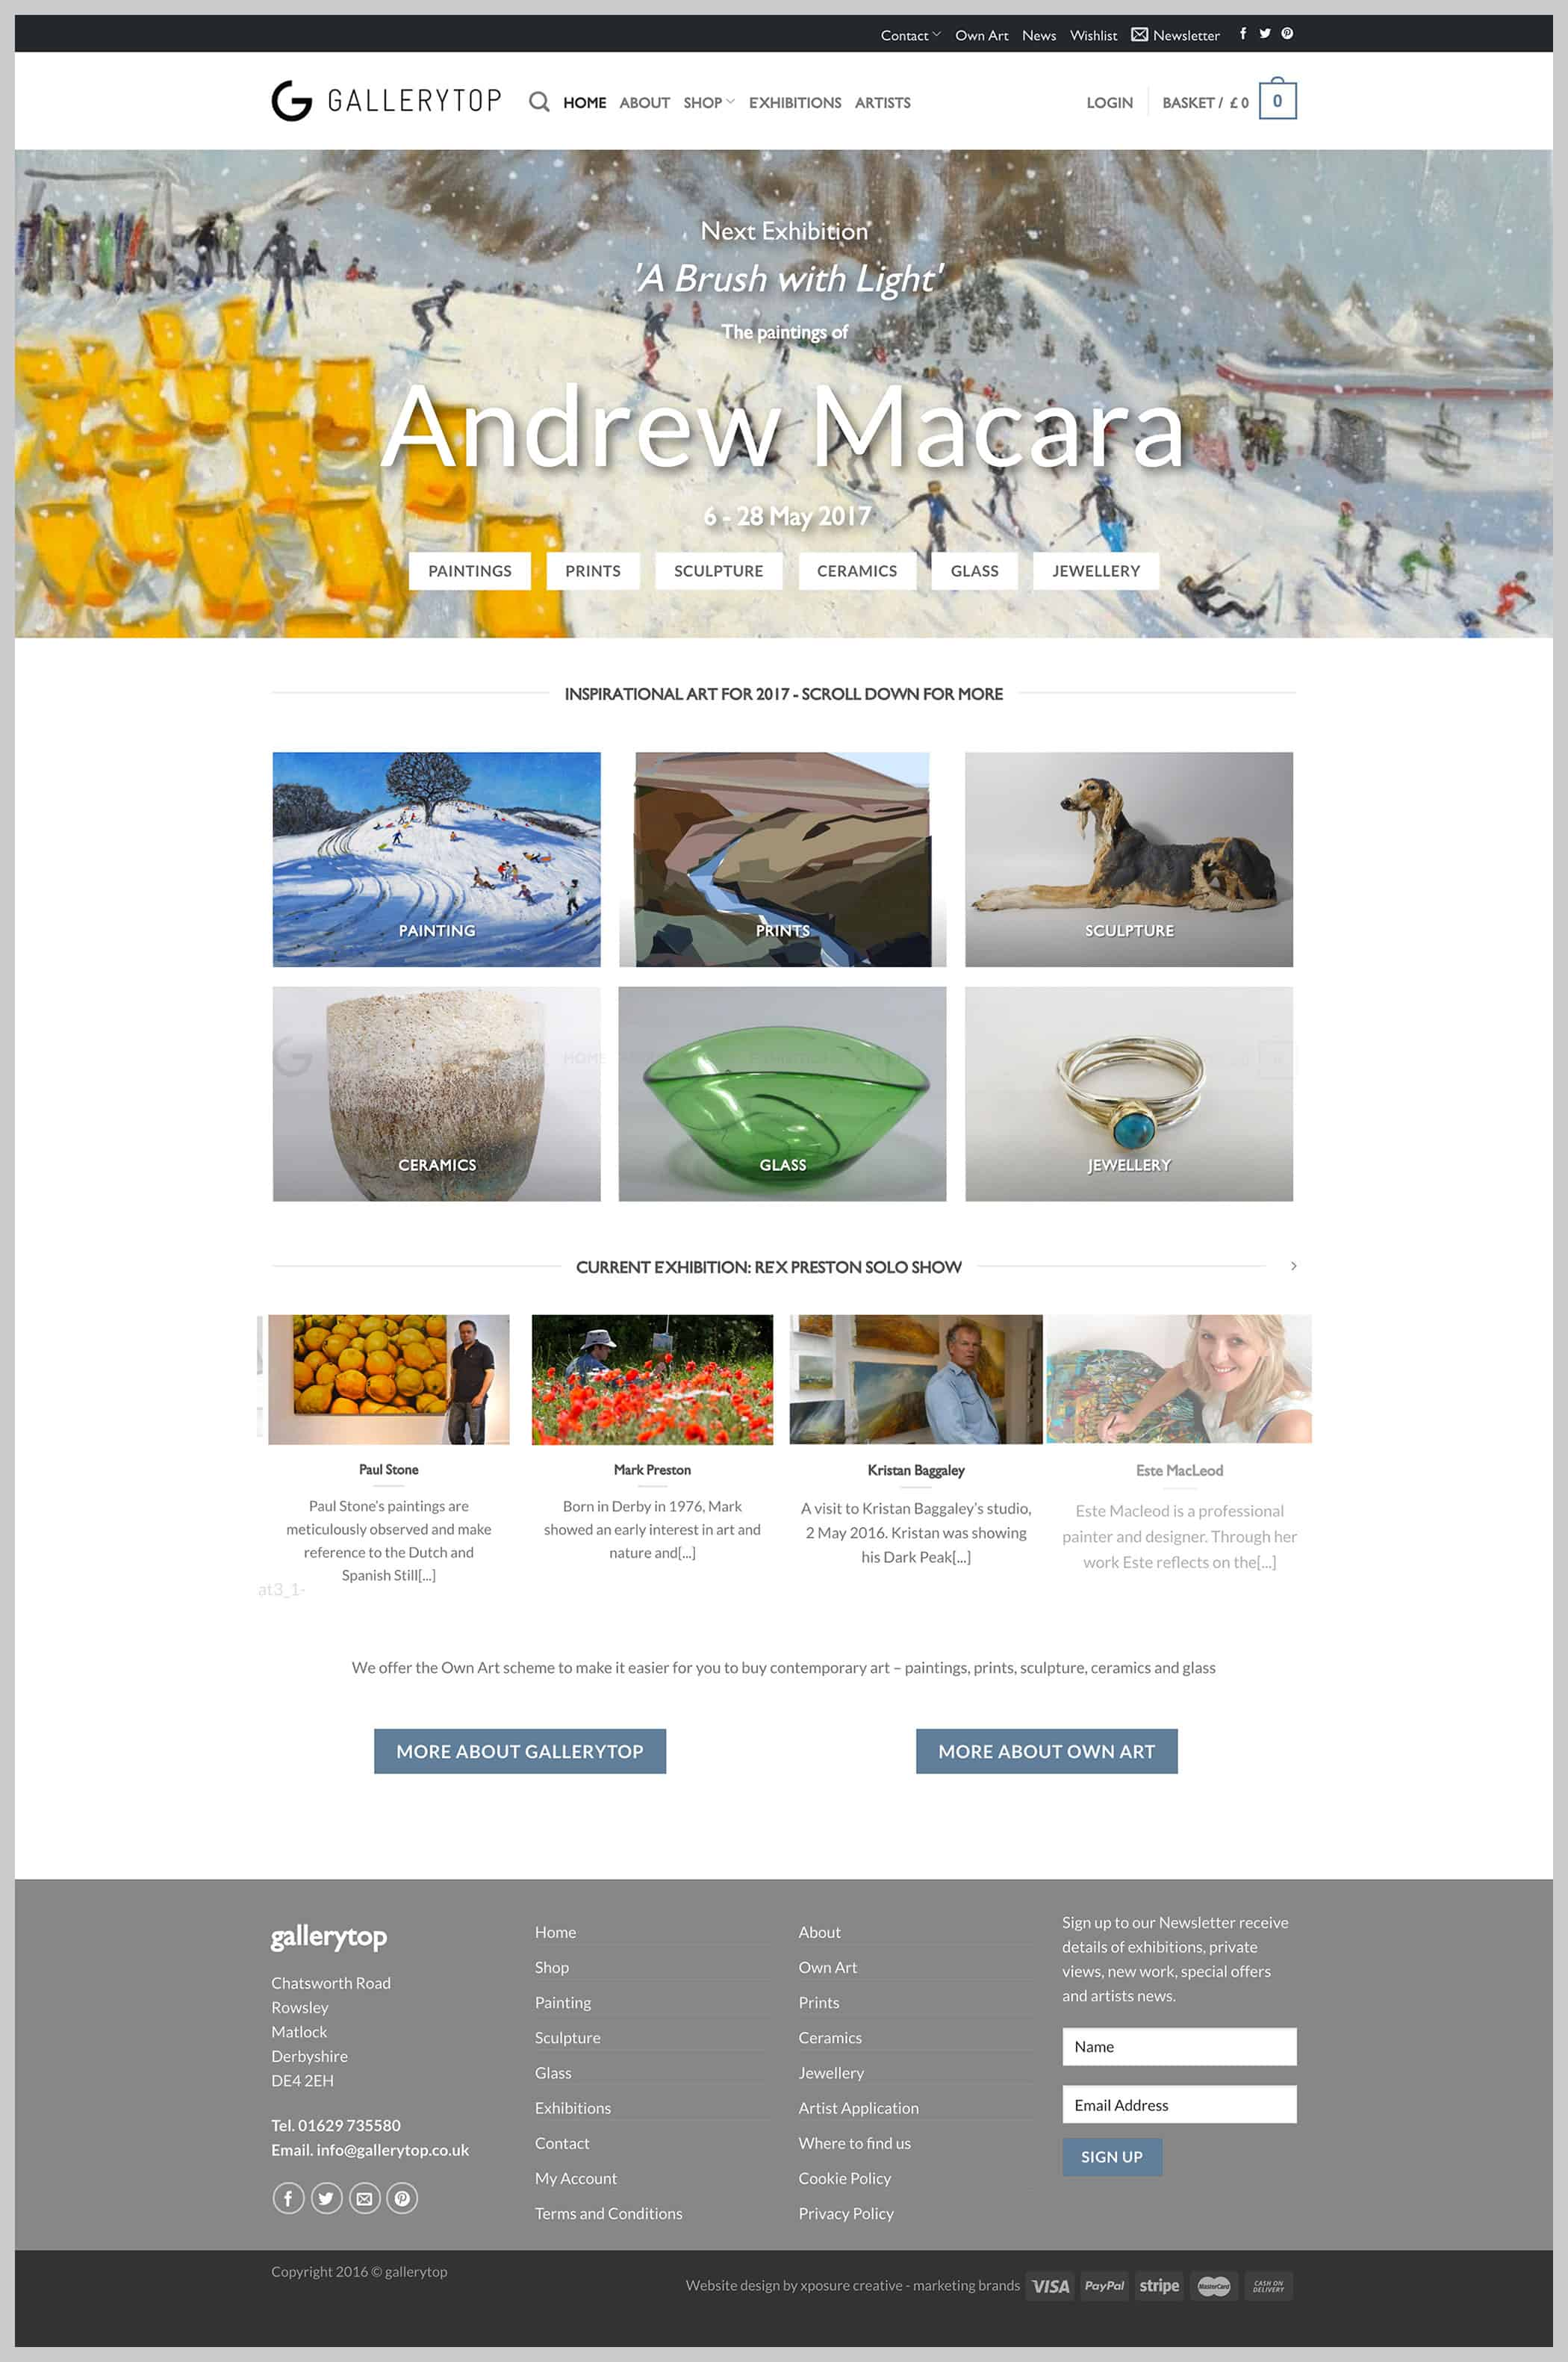 Gallery Top website home page design